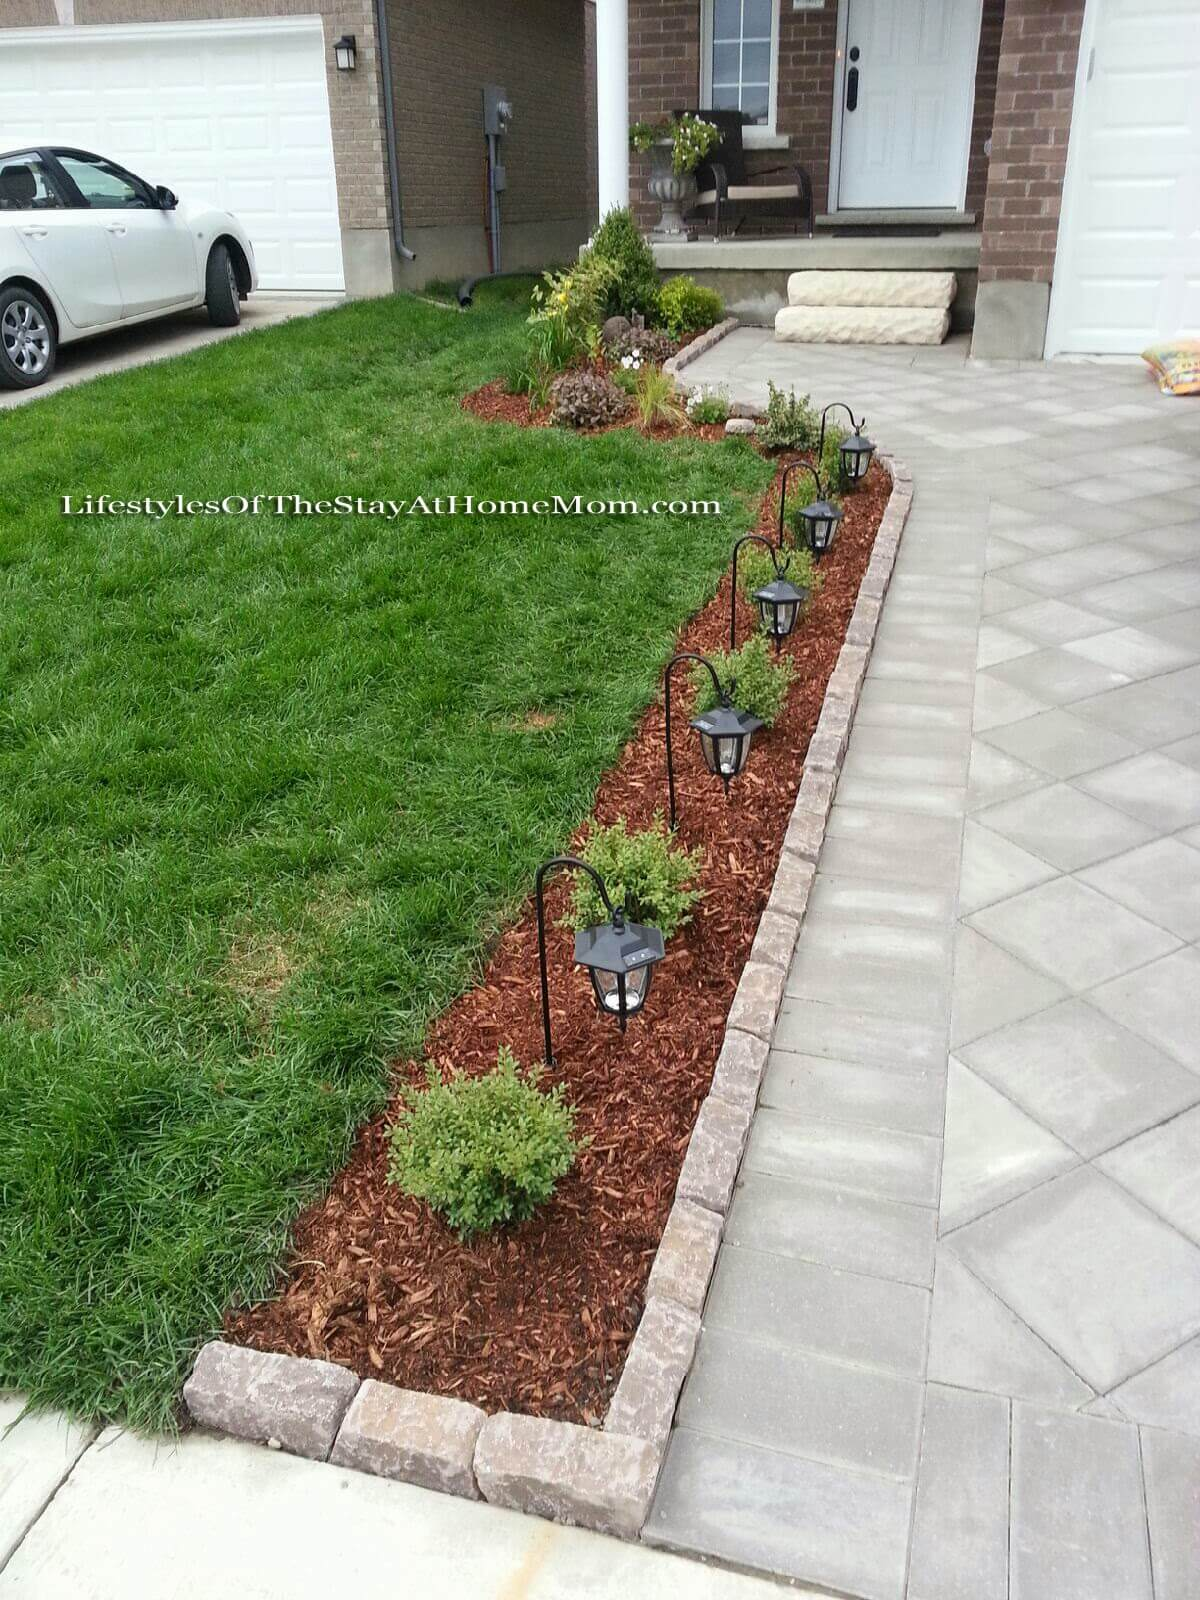 50 Best Front Yard Landscaping Ideas and Garden Designs ... on Patio And Grass Garden Ideas id=61998